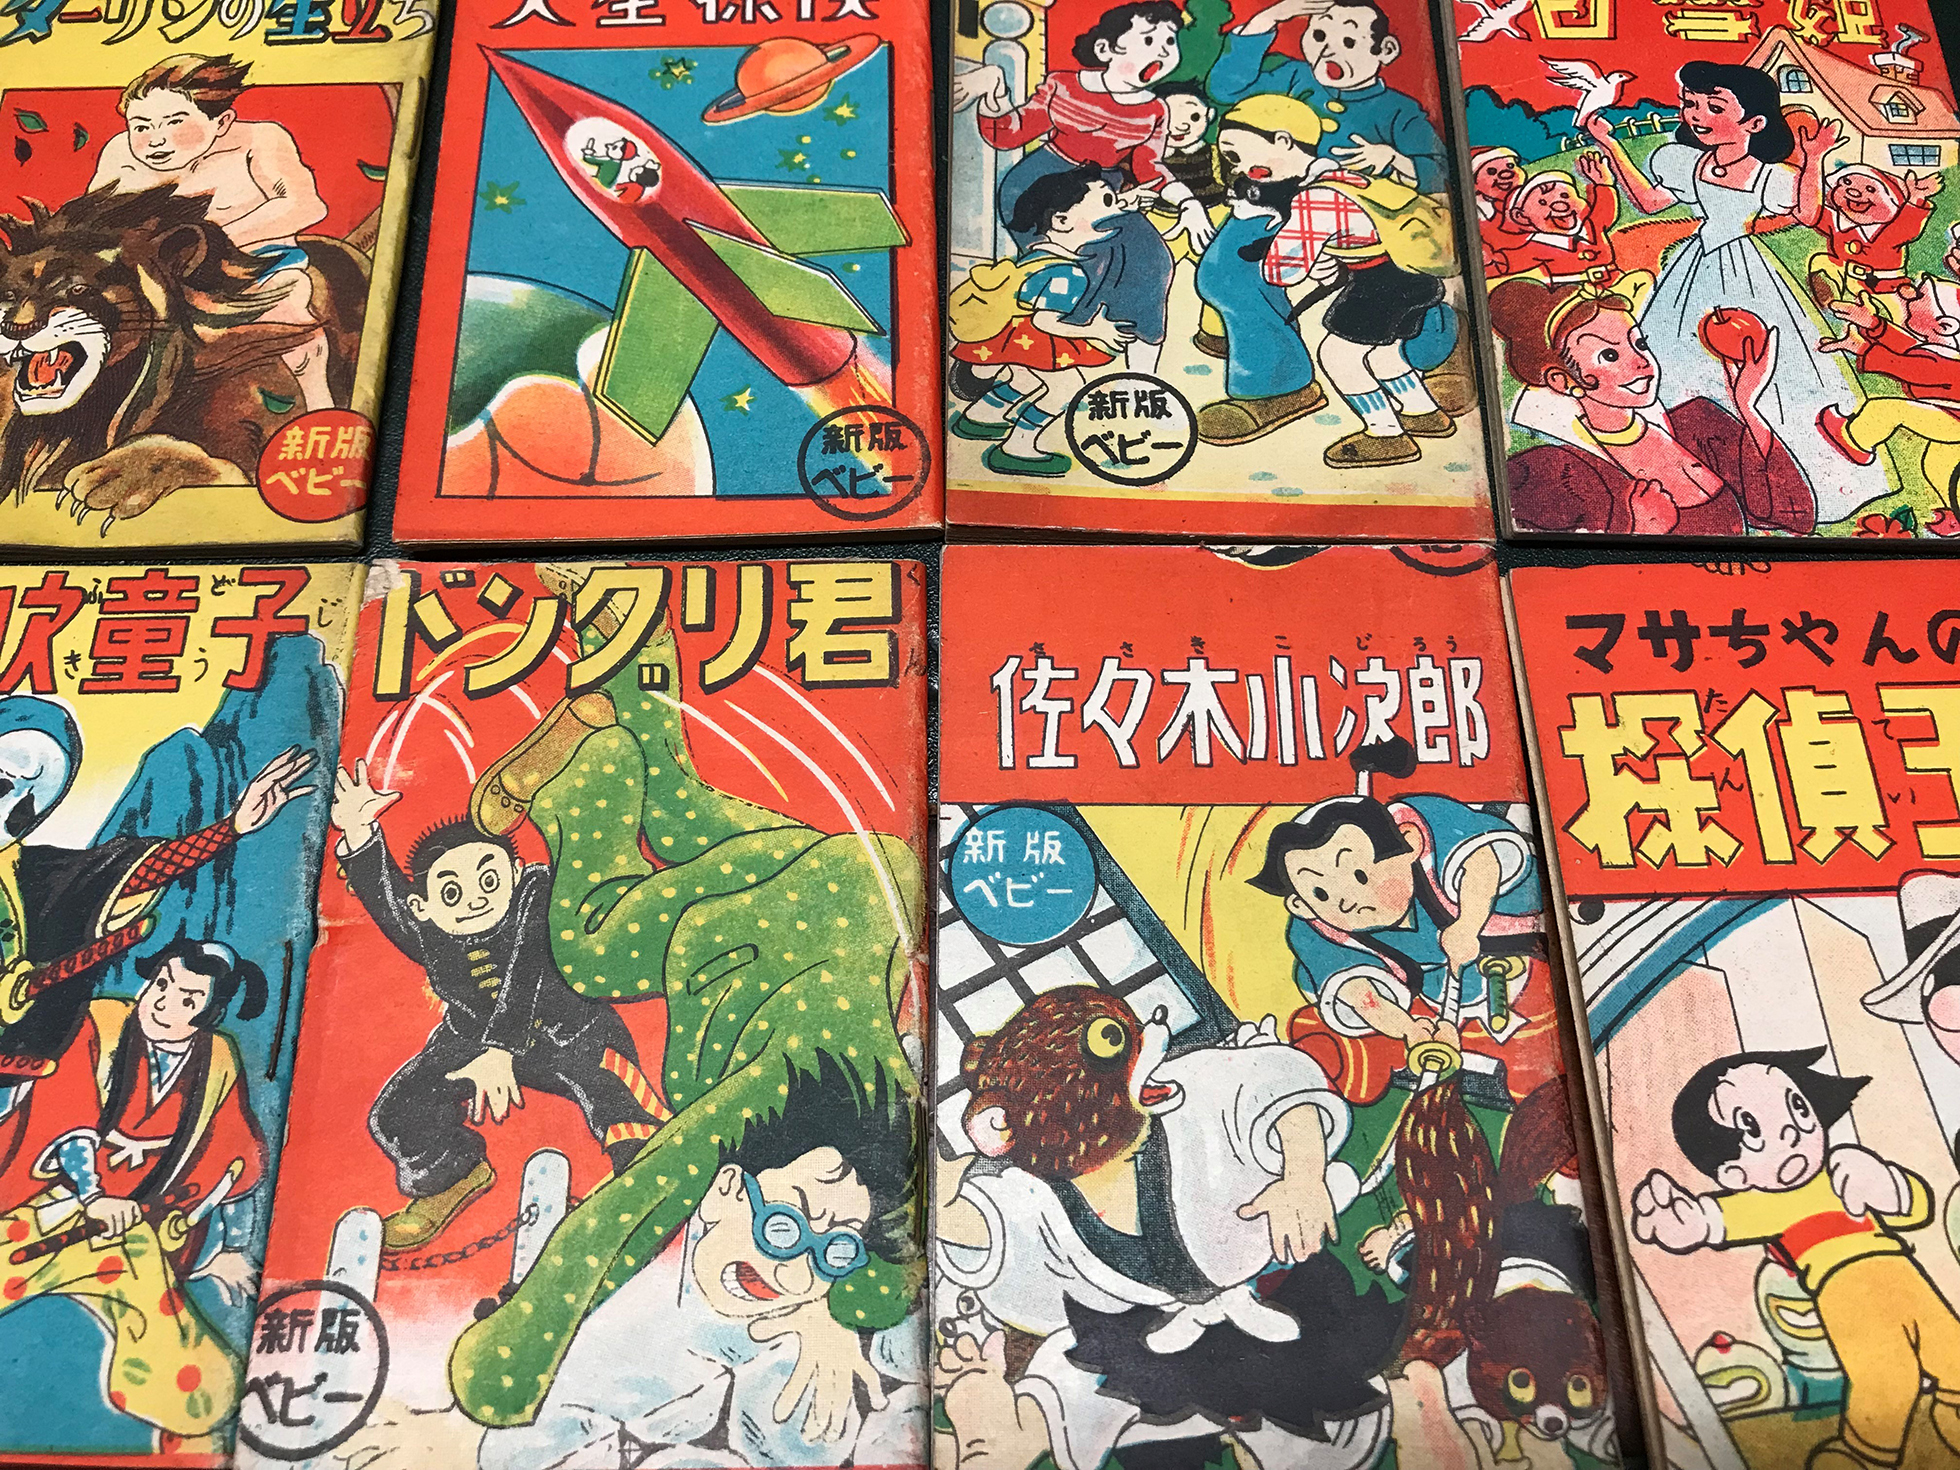 Manga: a brief history in 12 works - British Museum Blog